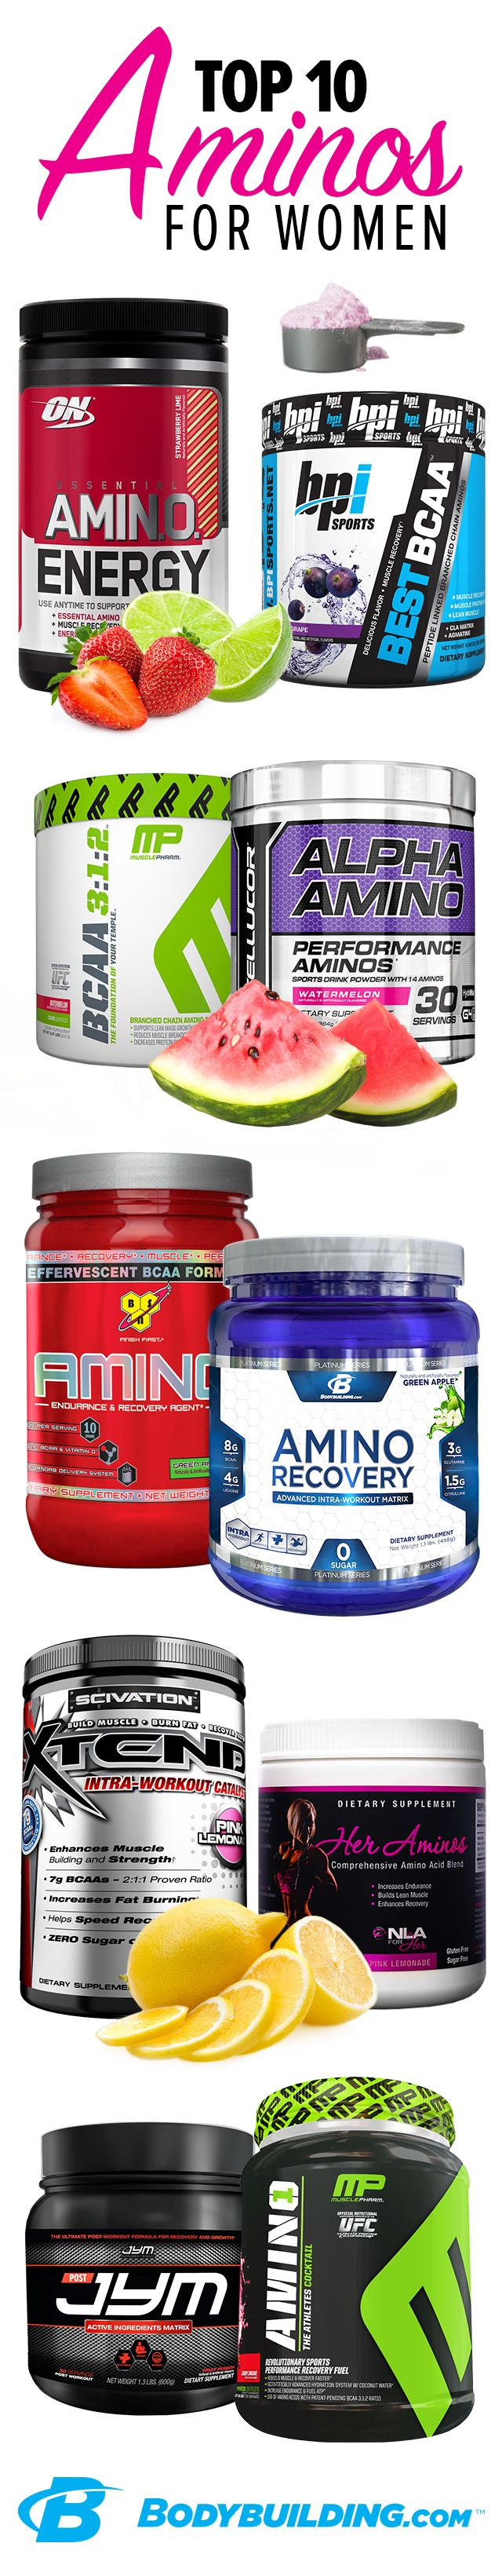 Top 10 Aminos for Women! These building blocks of protein are key to your muscle repair and growth. They can also help keep your immune system running strong, improve your mood and concentration, and support healthy digestion. Bodybuilding.com